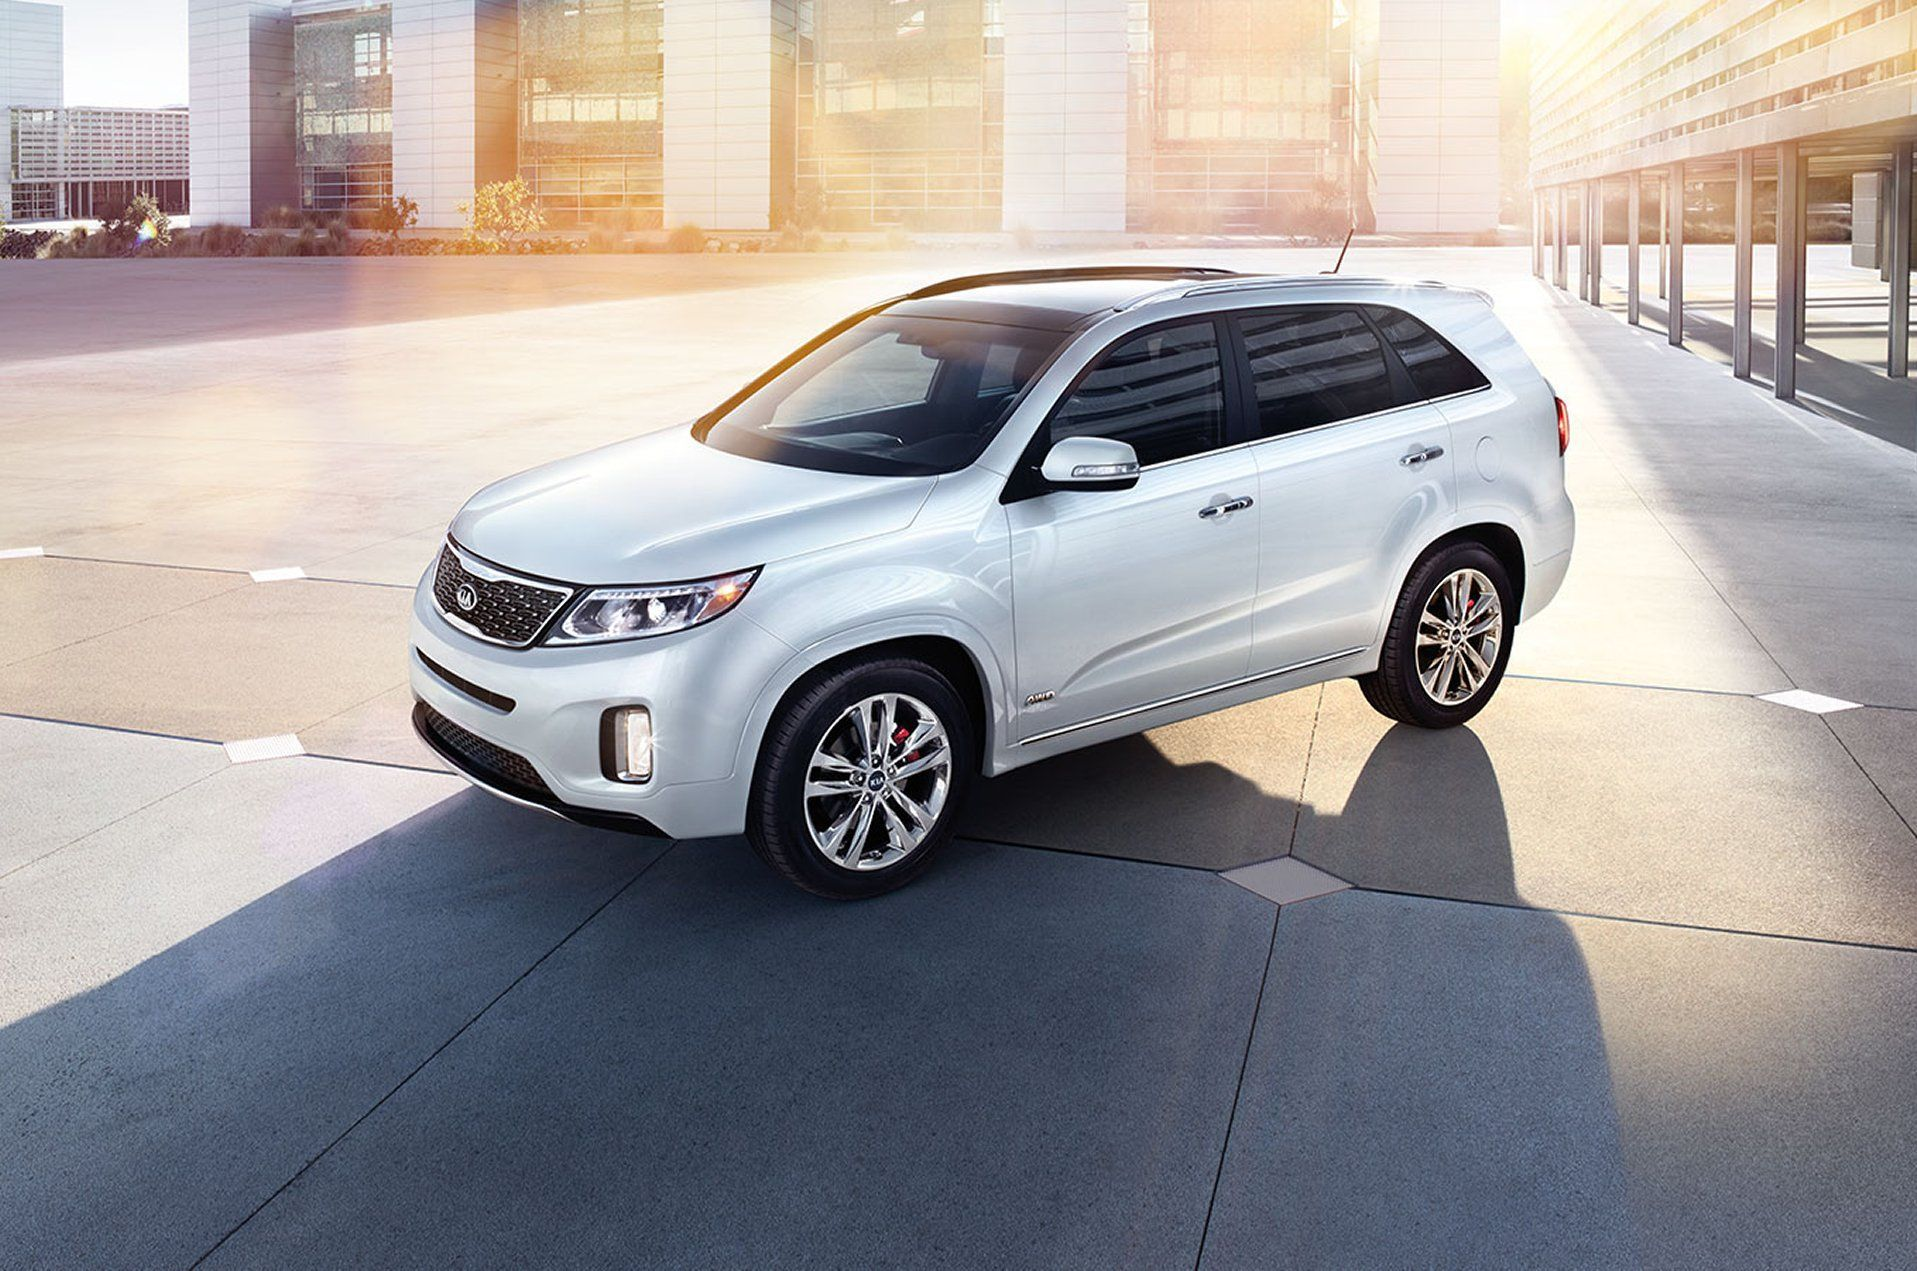 port new kia used friendly richey an cars error location dealership my fl near occurred